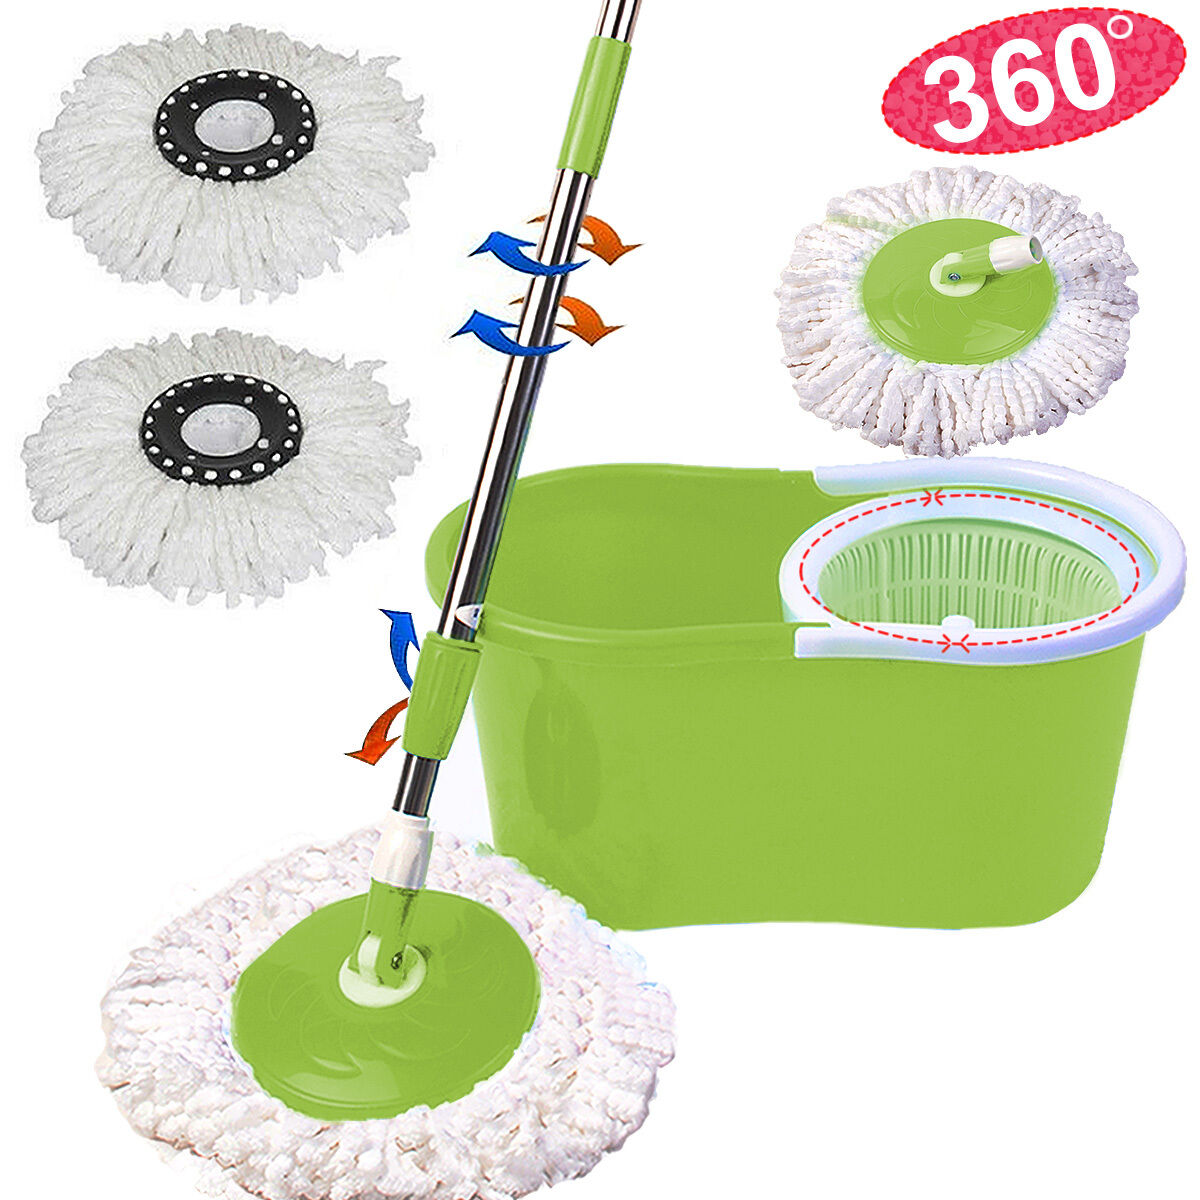 Microfiber Spining Magic Spin Mop W/Bucket 2 Heads Rotating 360°Easy Floor Mop